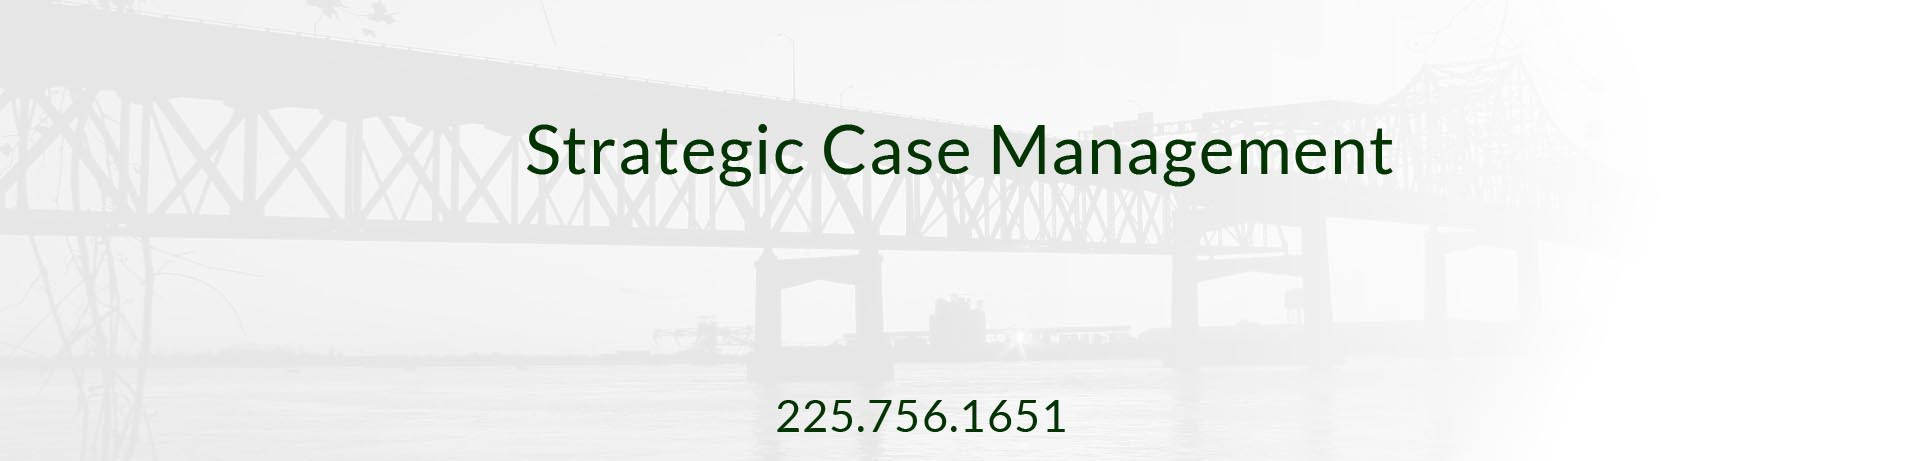 Strategic Case Management - Case Management Companies